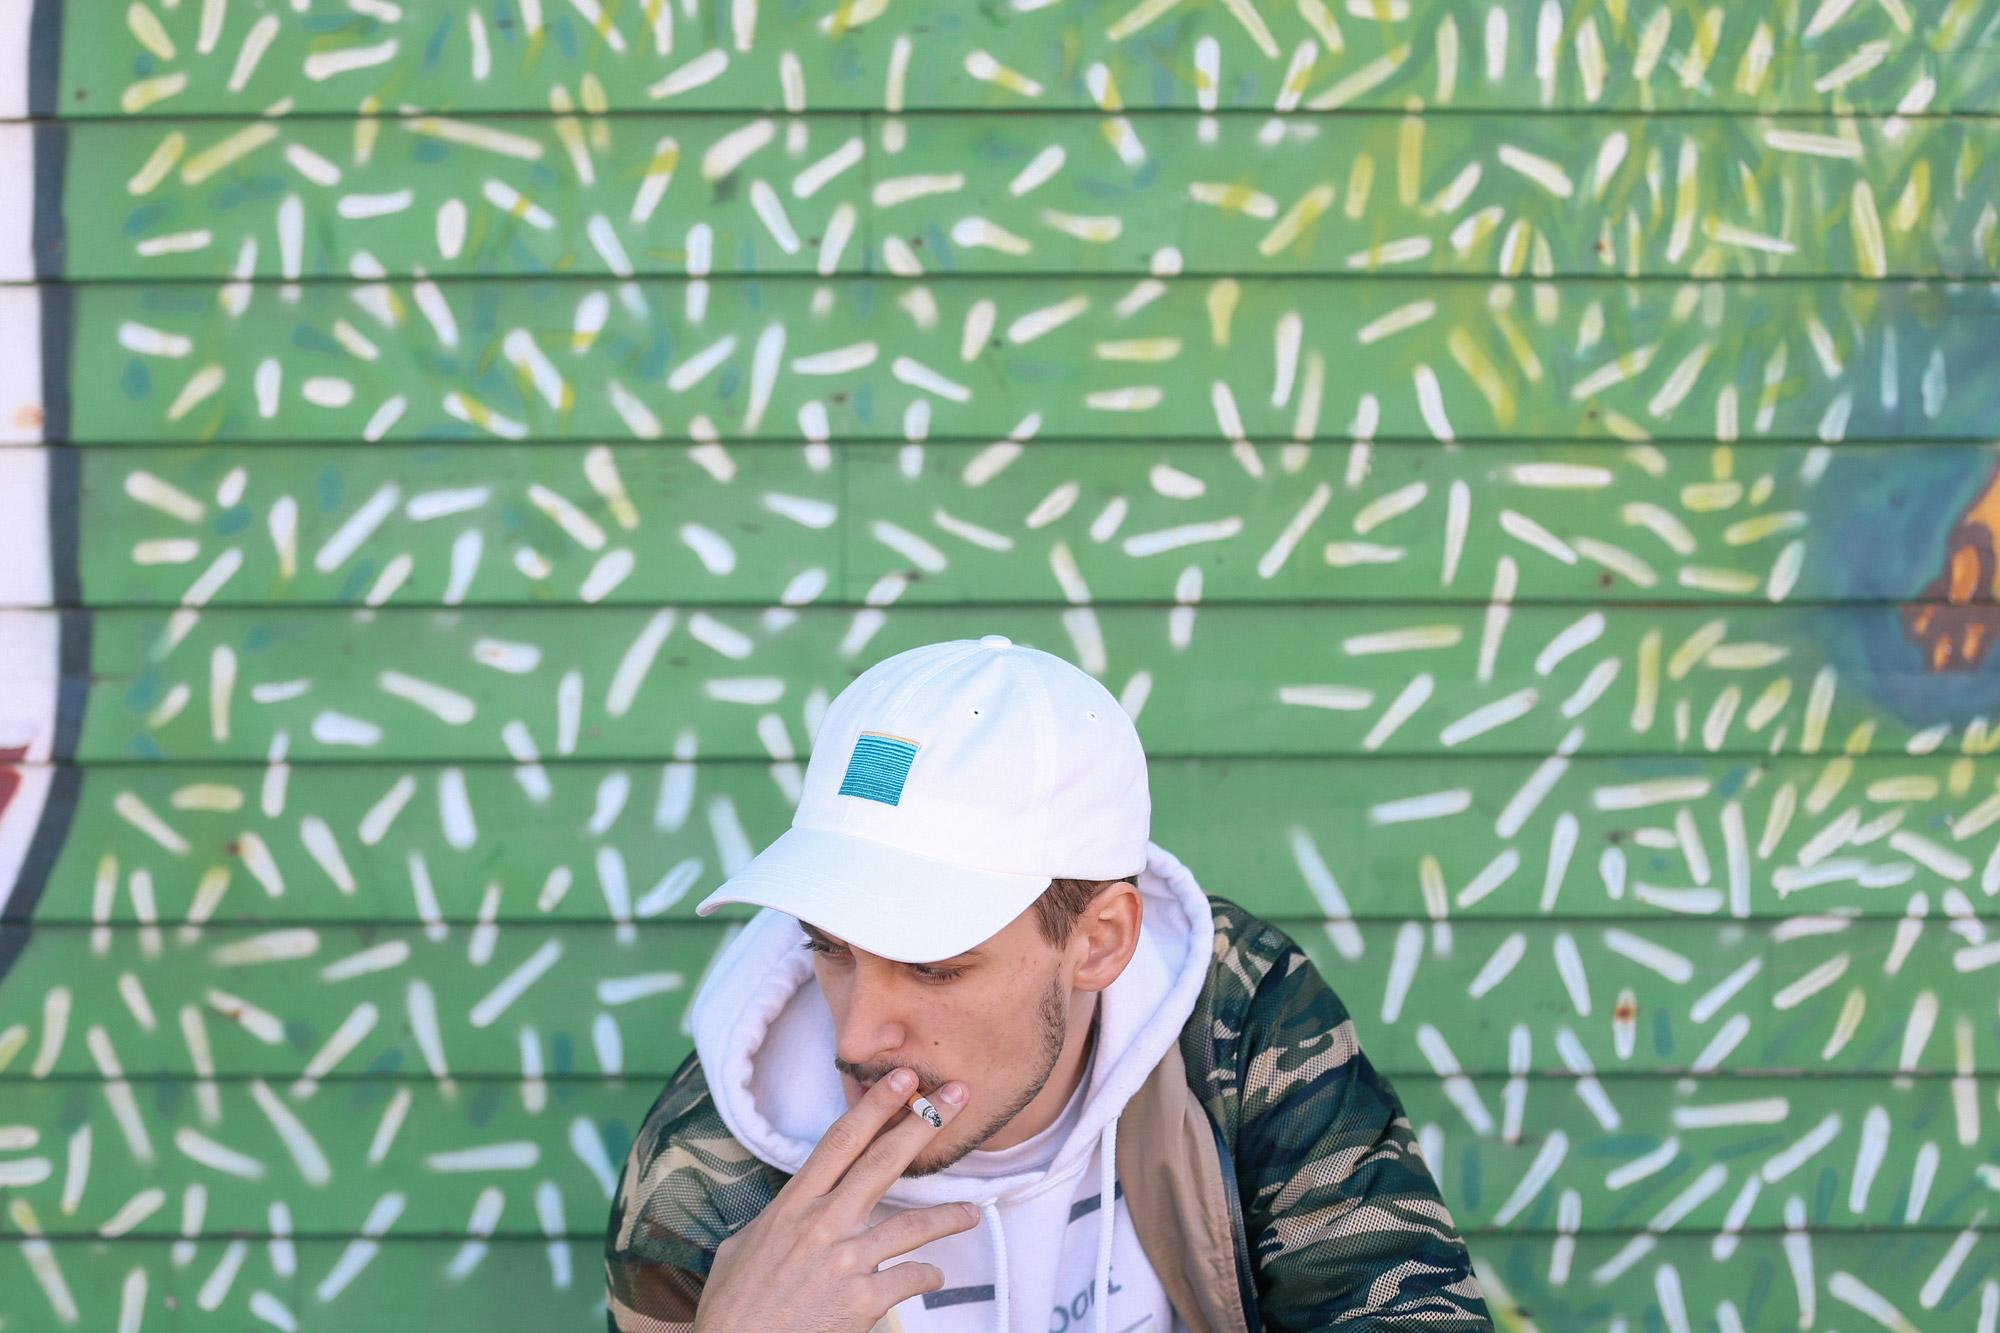 Bodega's Latest Hat Collection Puts a New Spin on Cigarette Logos